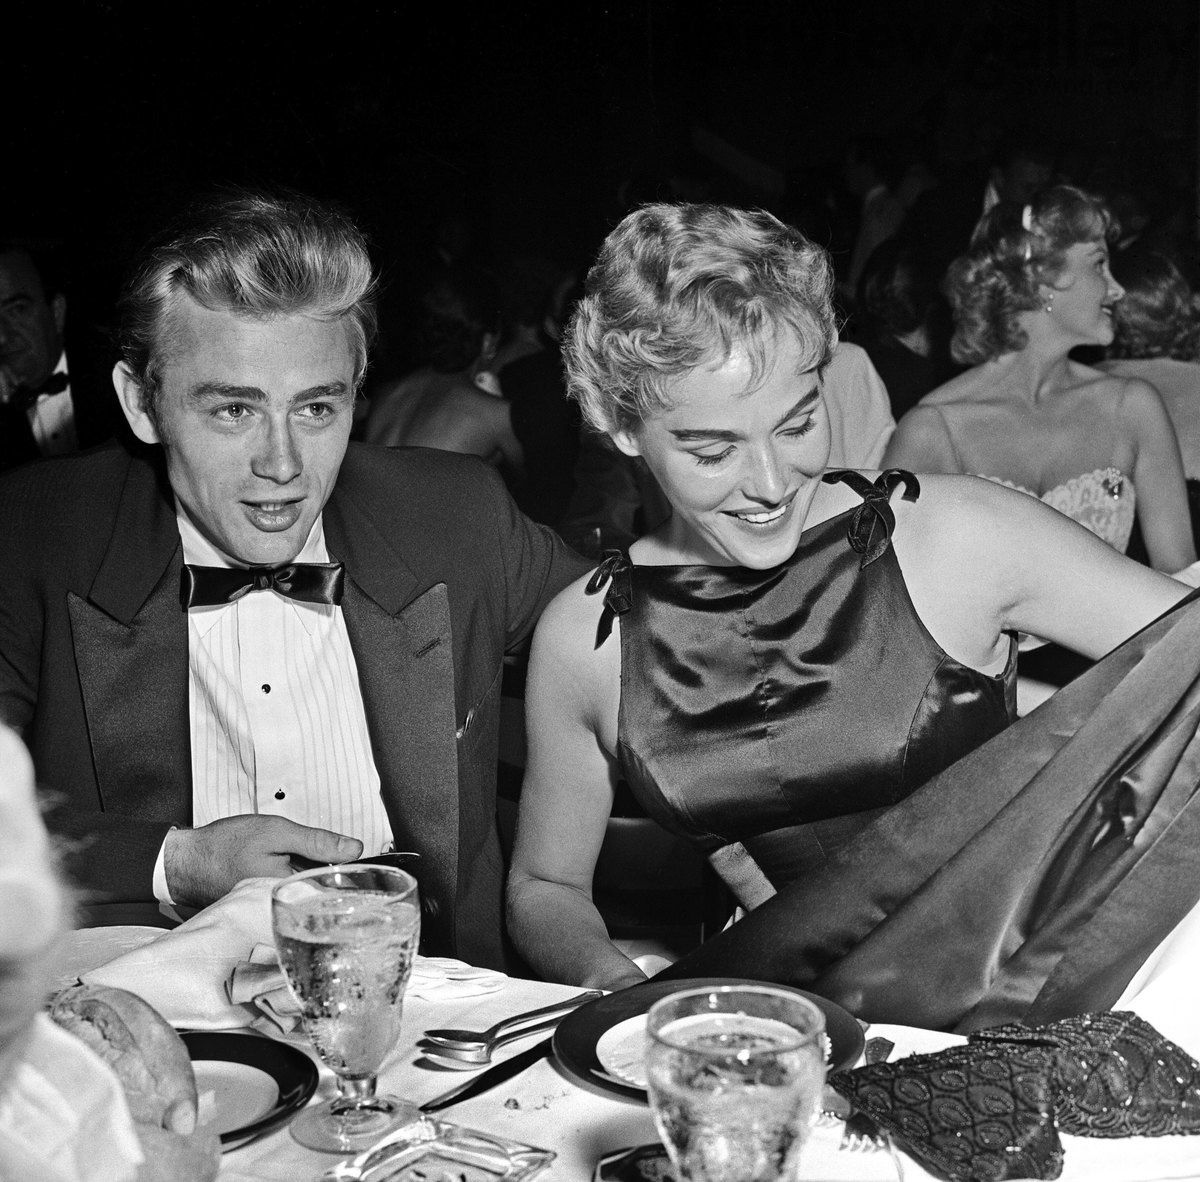 James Dean & Ursula Andress at Ciro's 1st September 1955 (He died on the 30 Sept 1955)